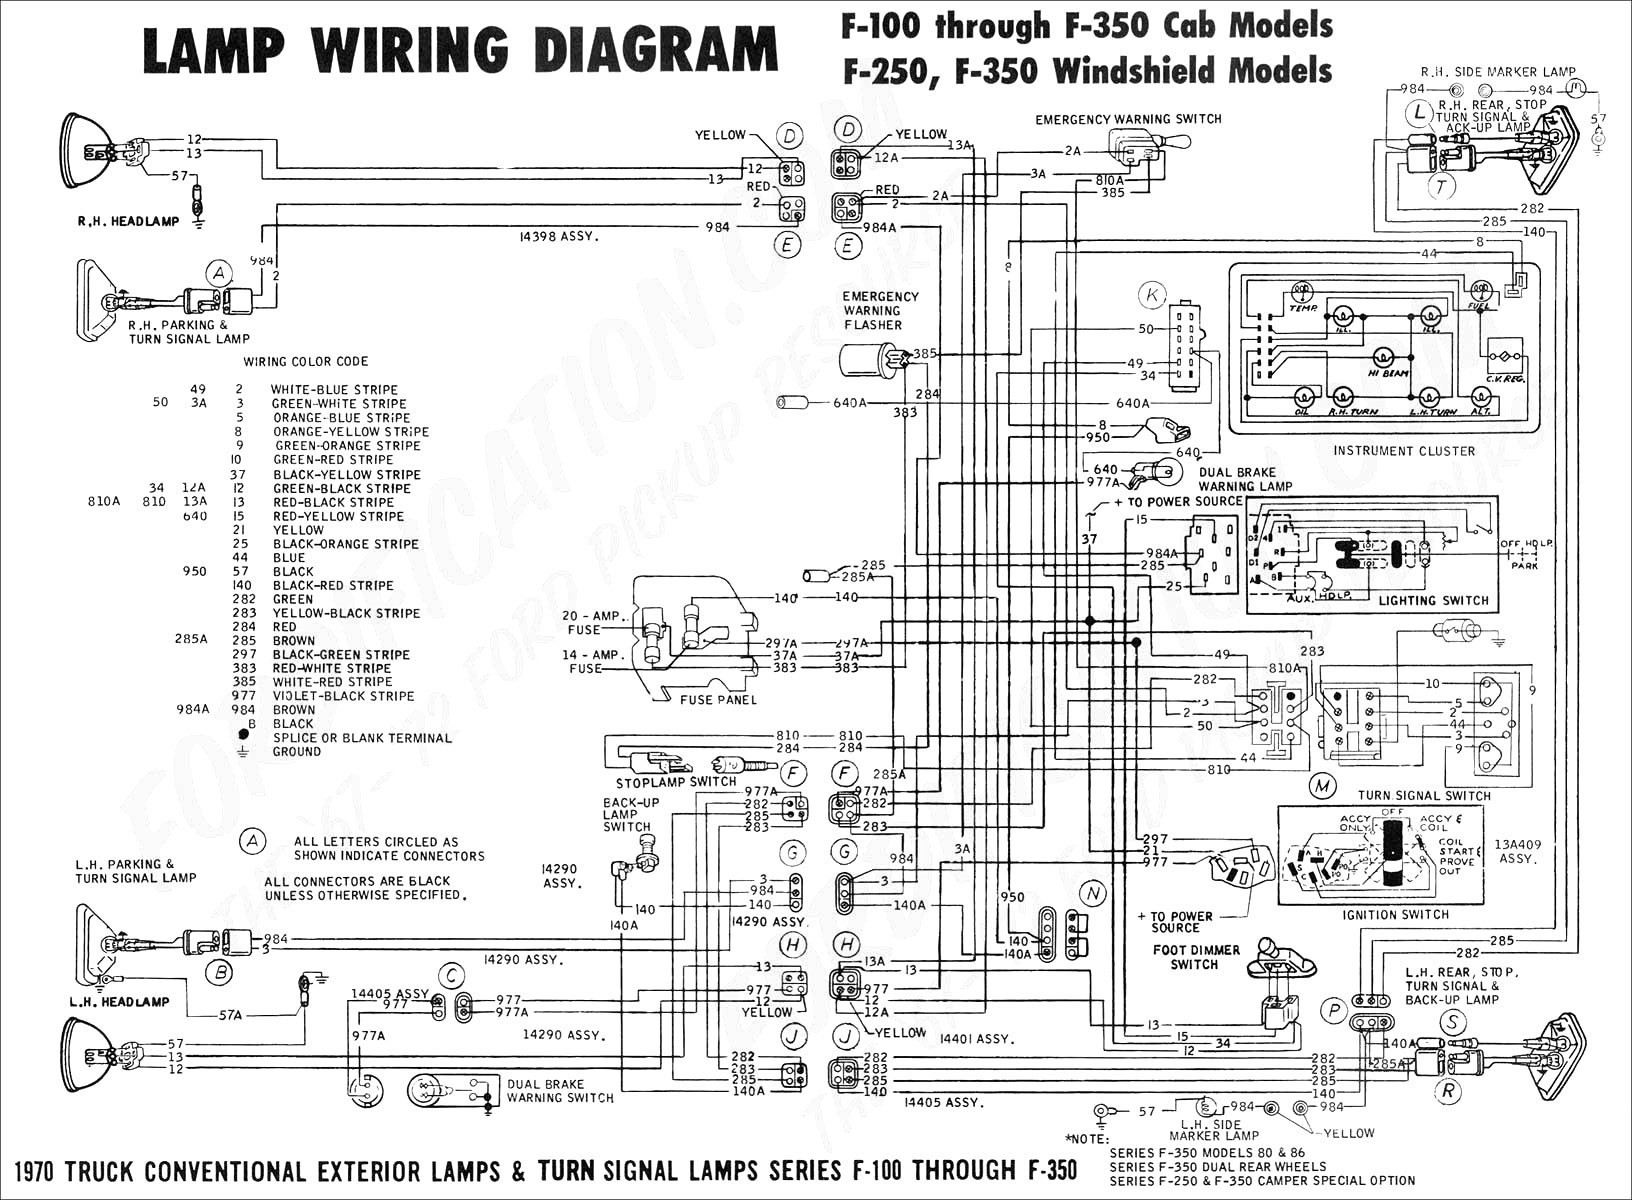 Trailer Light Wiring Diagram 7 Way ford Alternator Wiring Harness Of Trailer Light Wiring Diagram 7 Way Featherlite Trailers Wiring Diagrams Wiring Diagram Paper